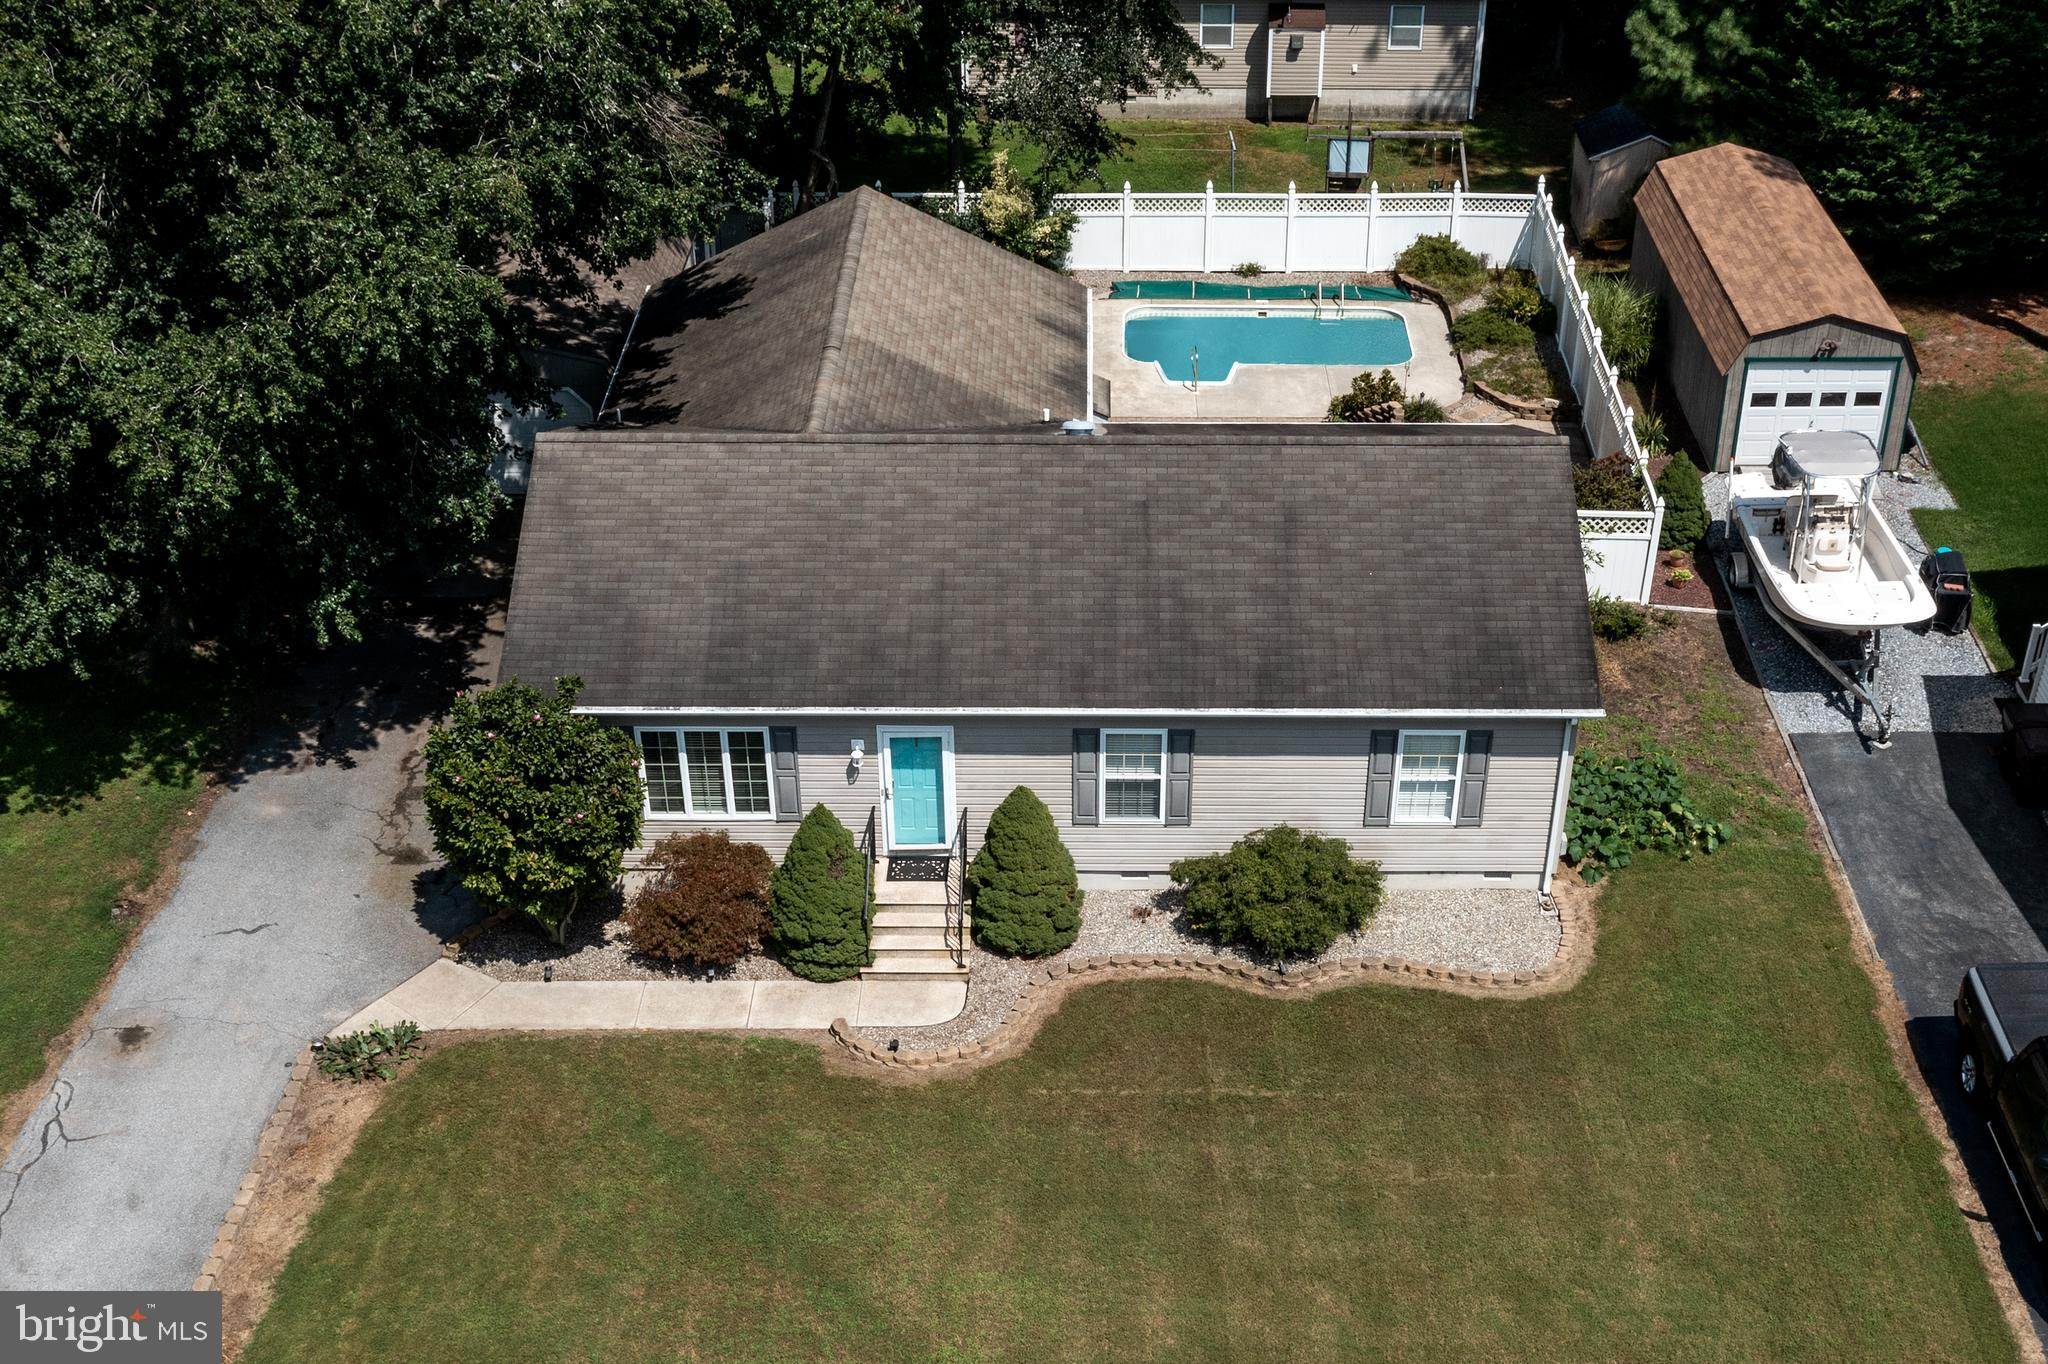 This well maintained ranch home has a big family room addition off the back overlooking an inground